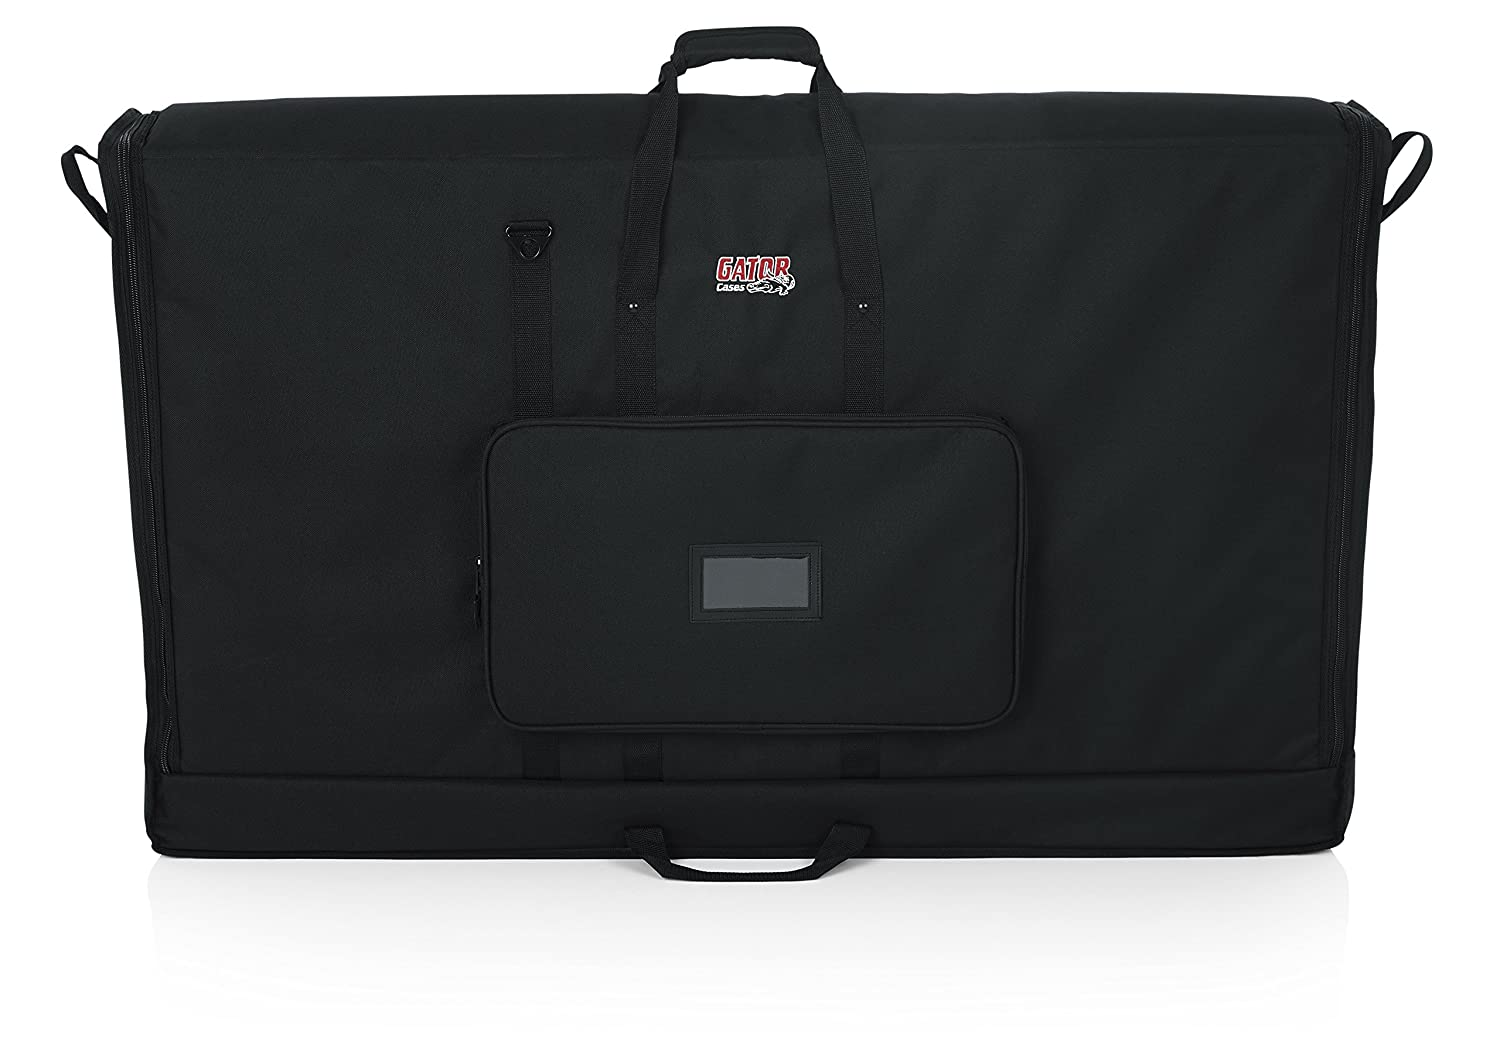 Monitors and TVs Between 19-24; G-LCD-TOTE-SM Gator Cases Padded Nylon Carry Tote Bag for Transporting LCD Screens